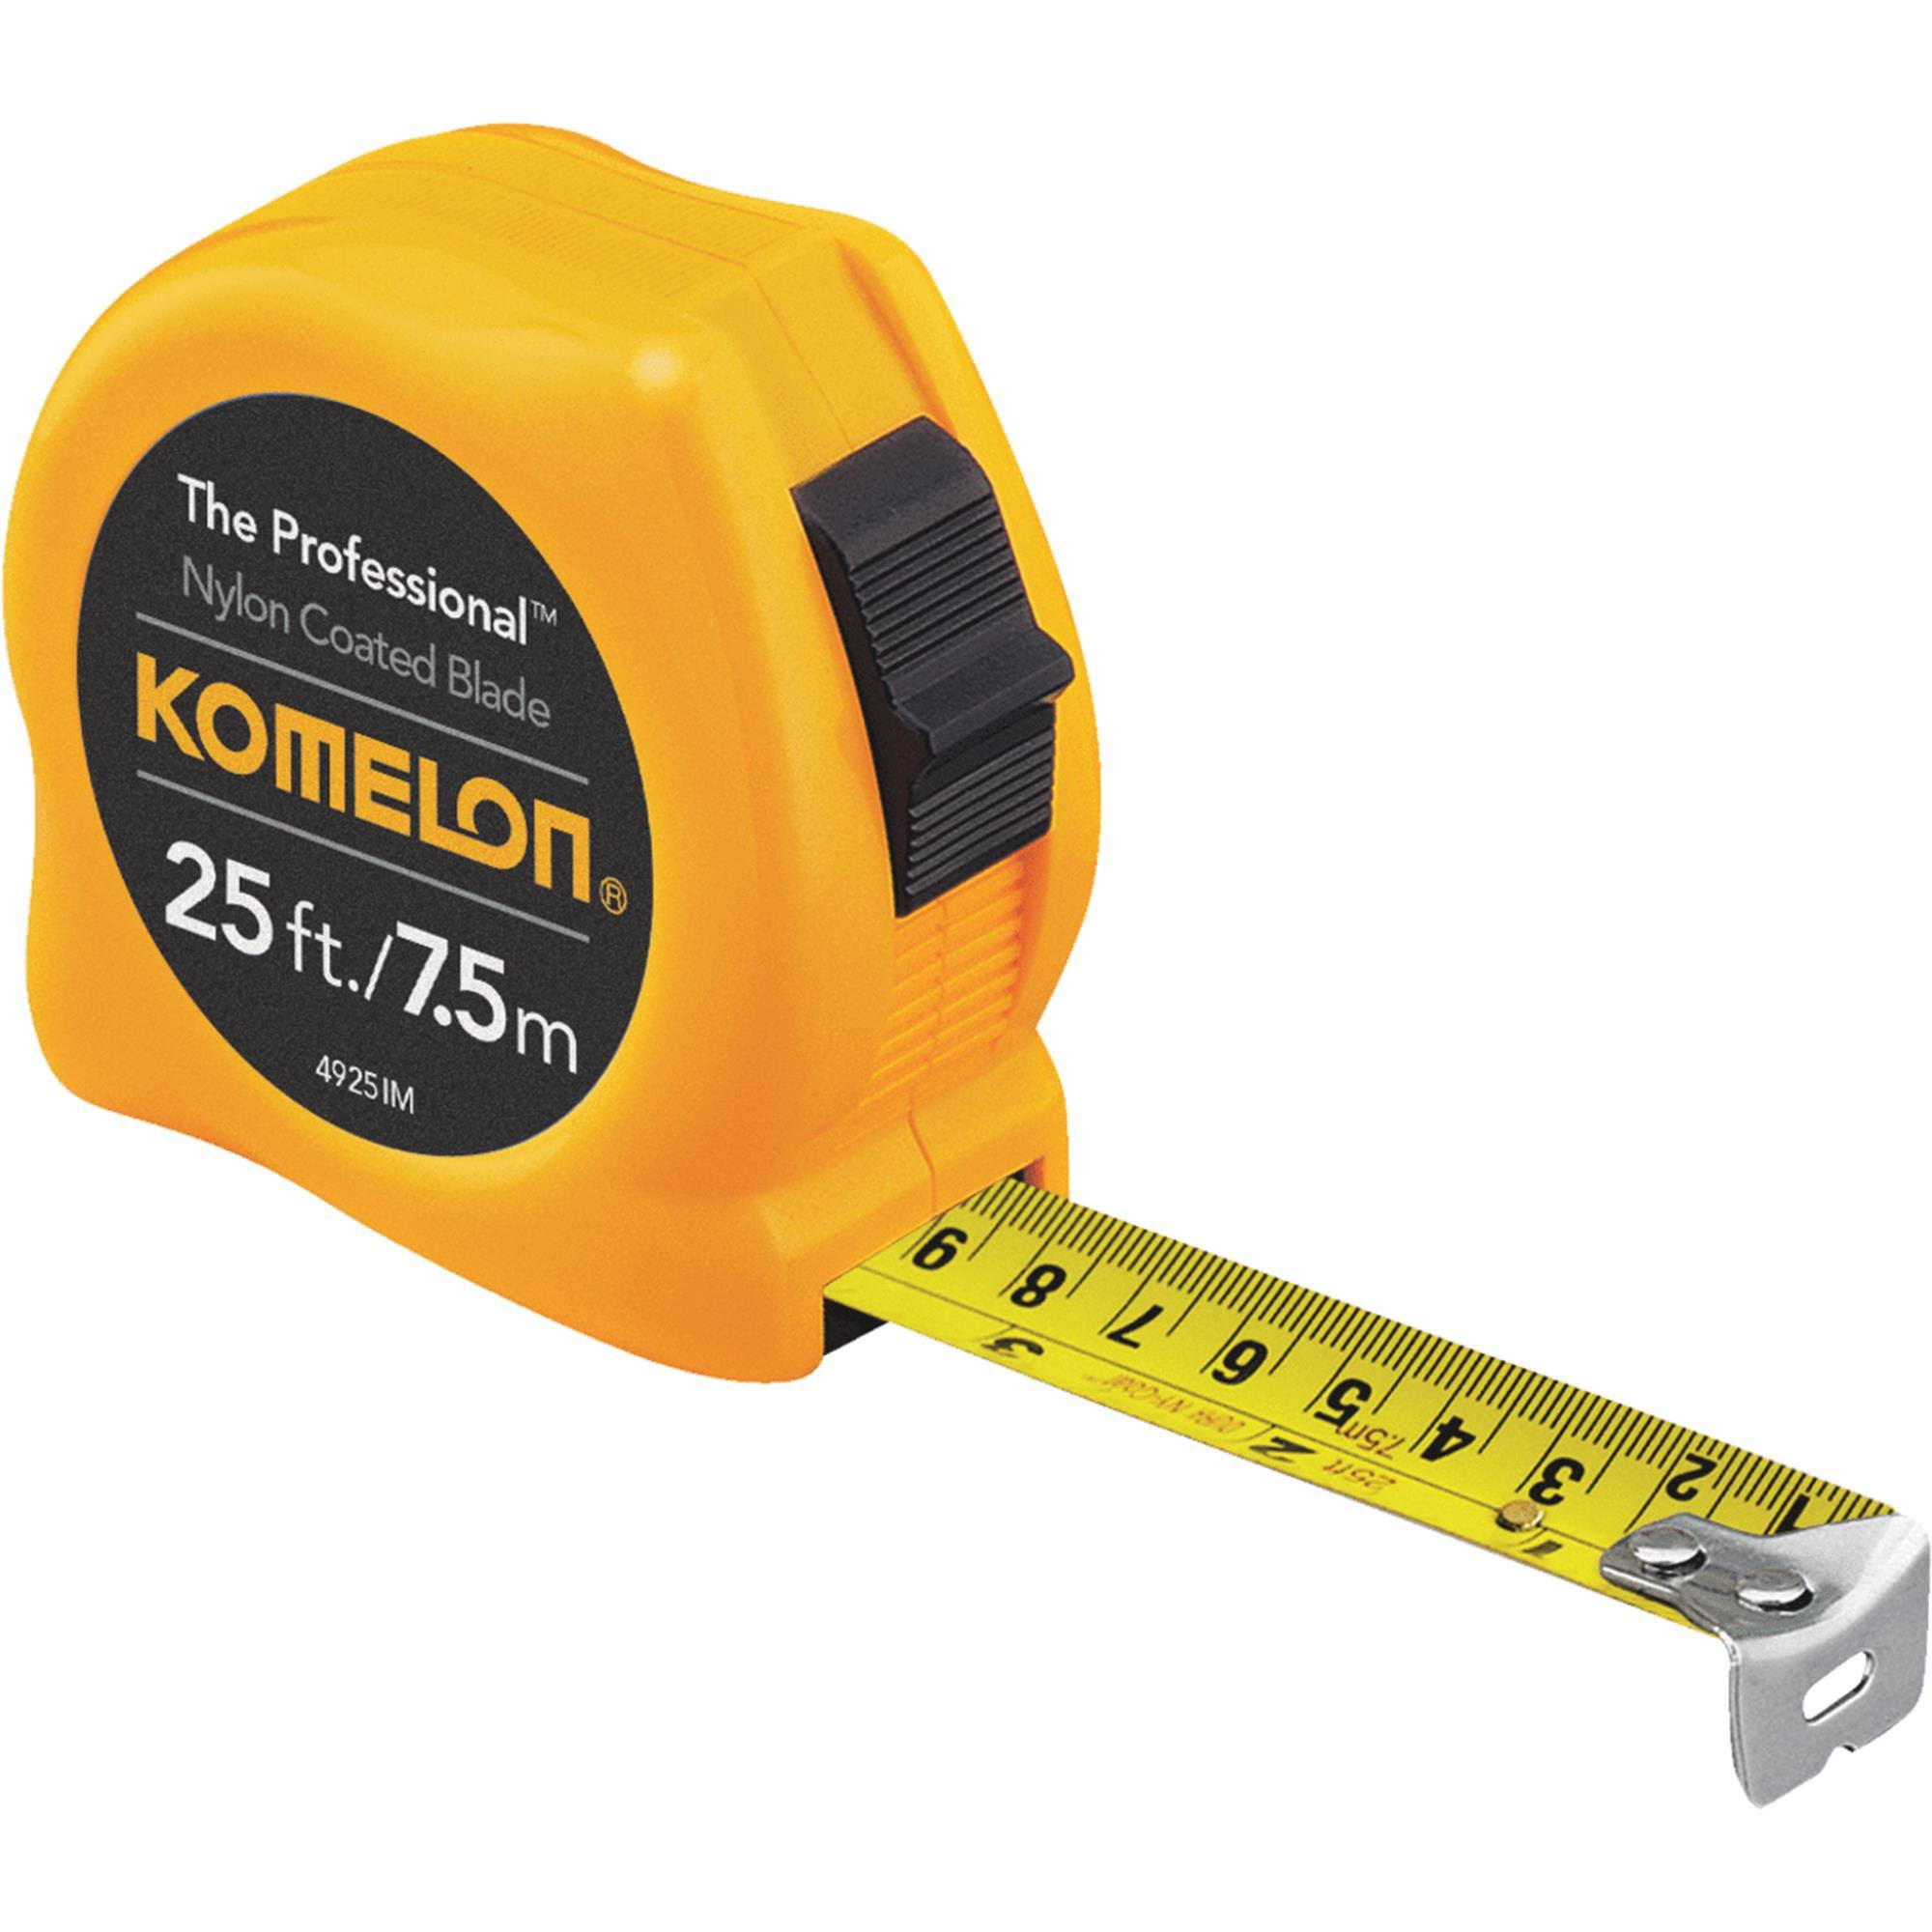 Komelon 4925IM The Professional Metric Scale Power Tape - Yellow, 25'